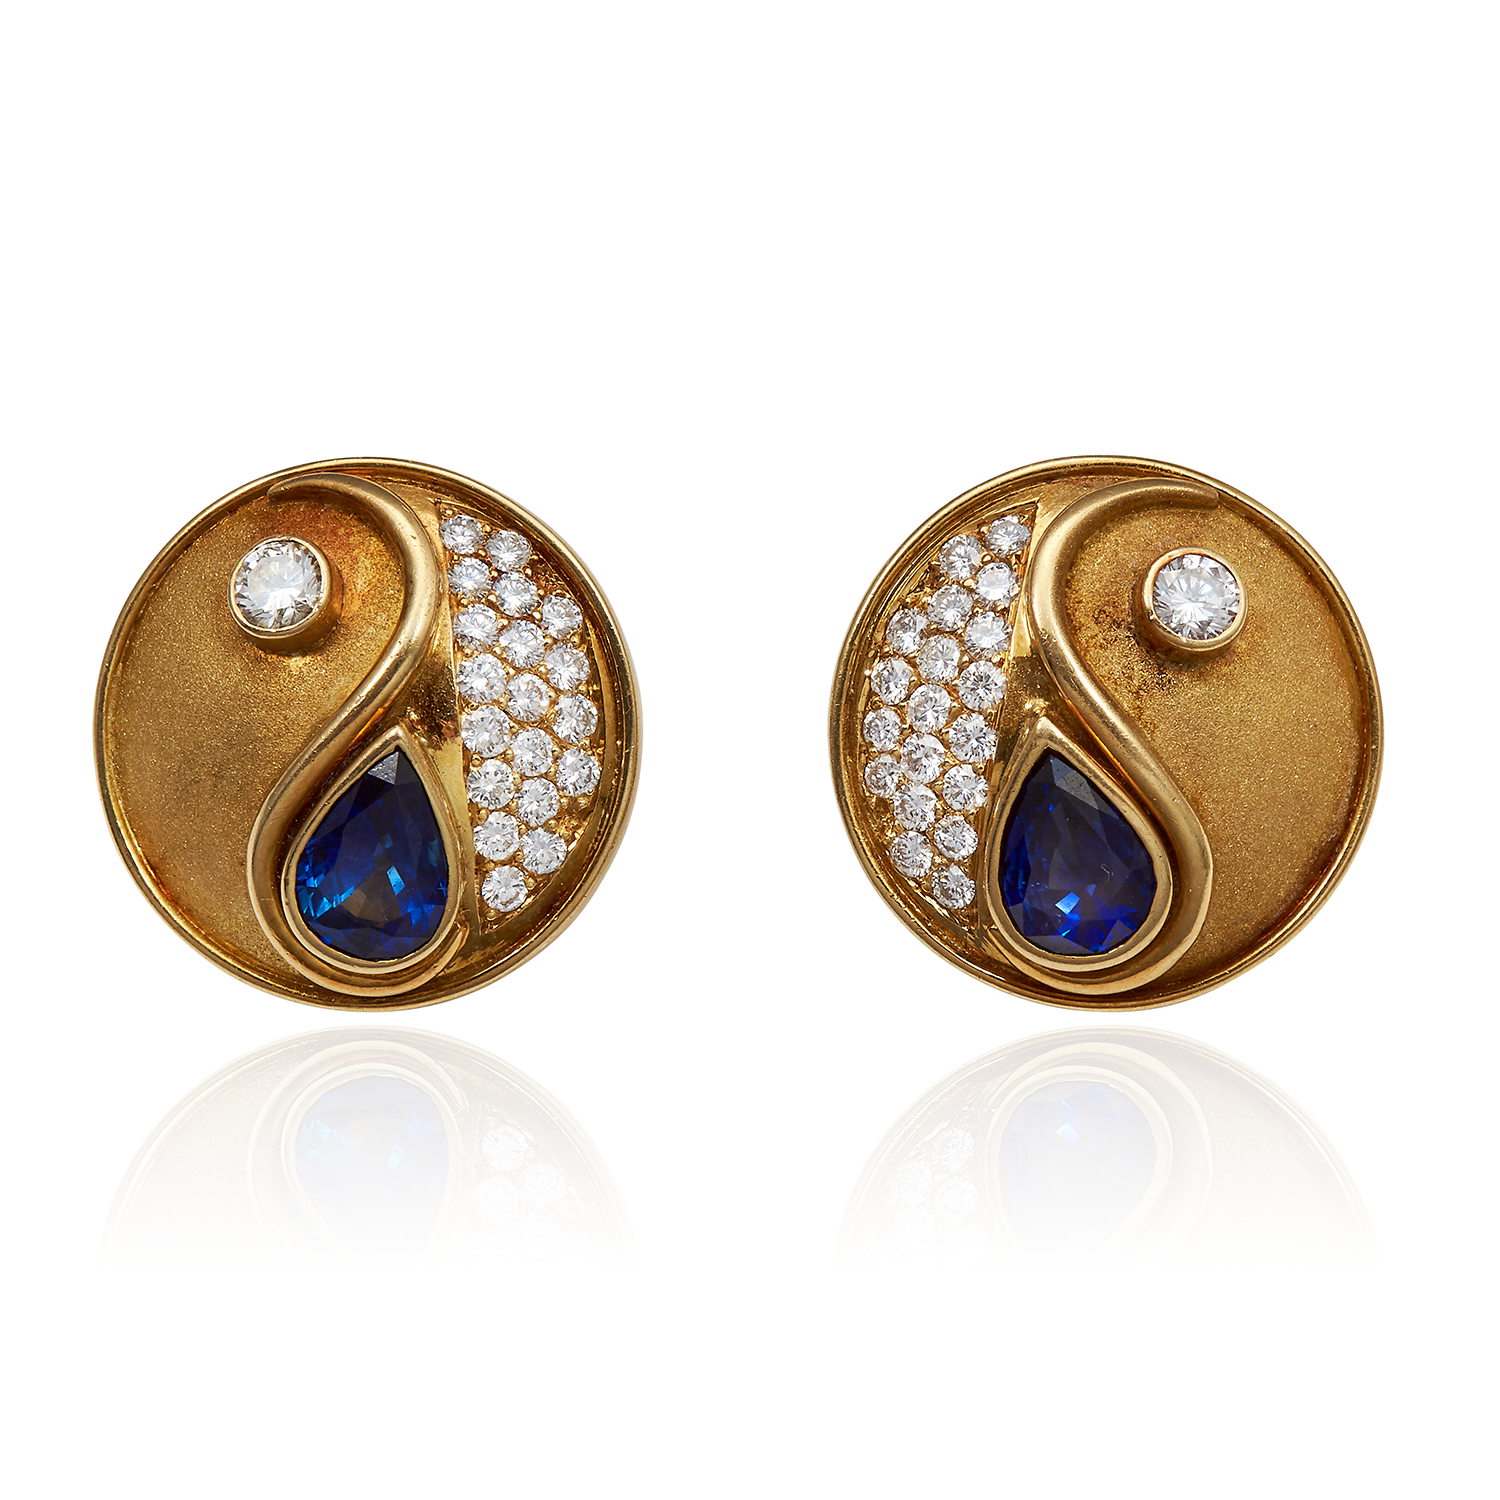 A PAIR OF DIAMOND AND SAPPHIRE YIN YANG EARRINGS, BOODLES in 18ct yellow gold, set with two pear cut